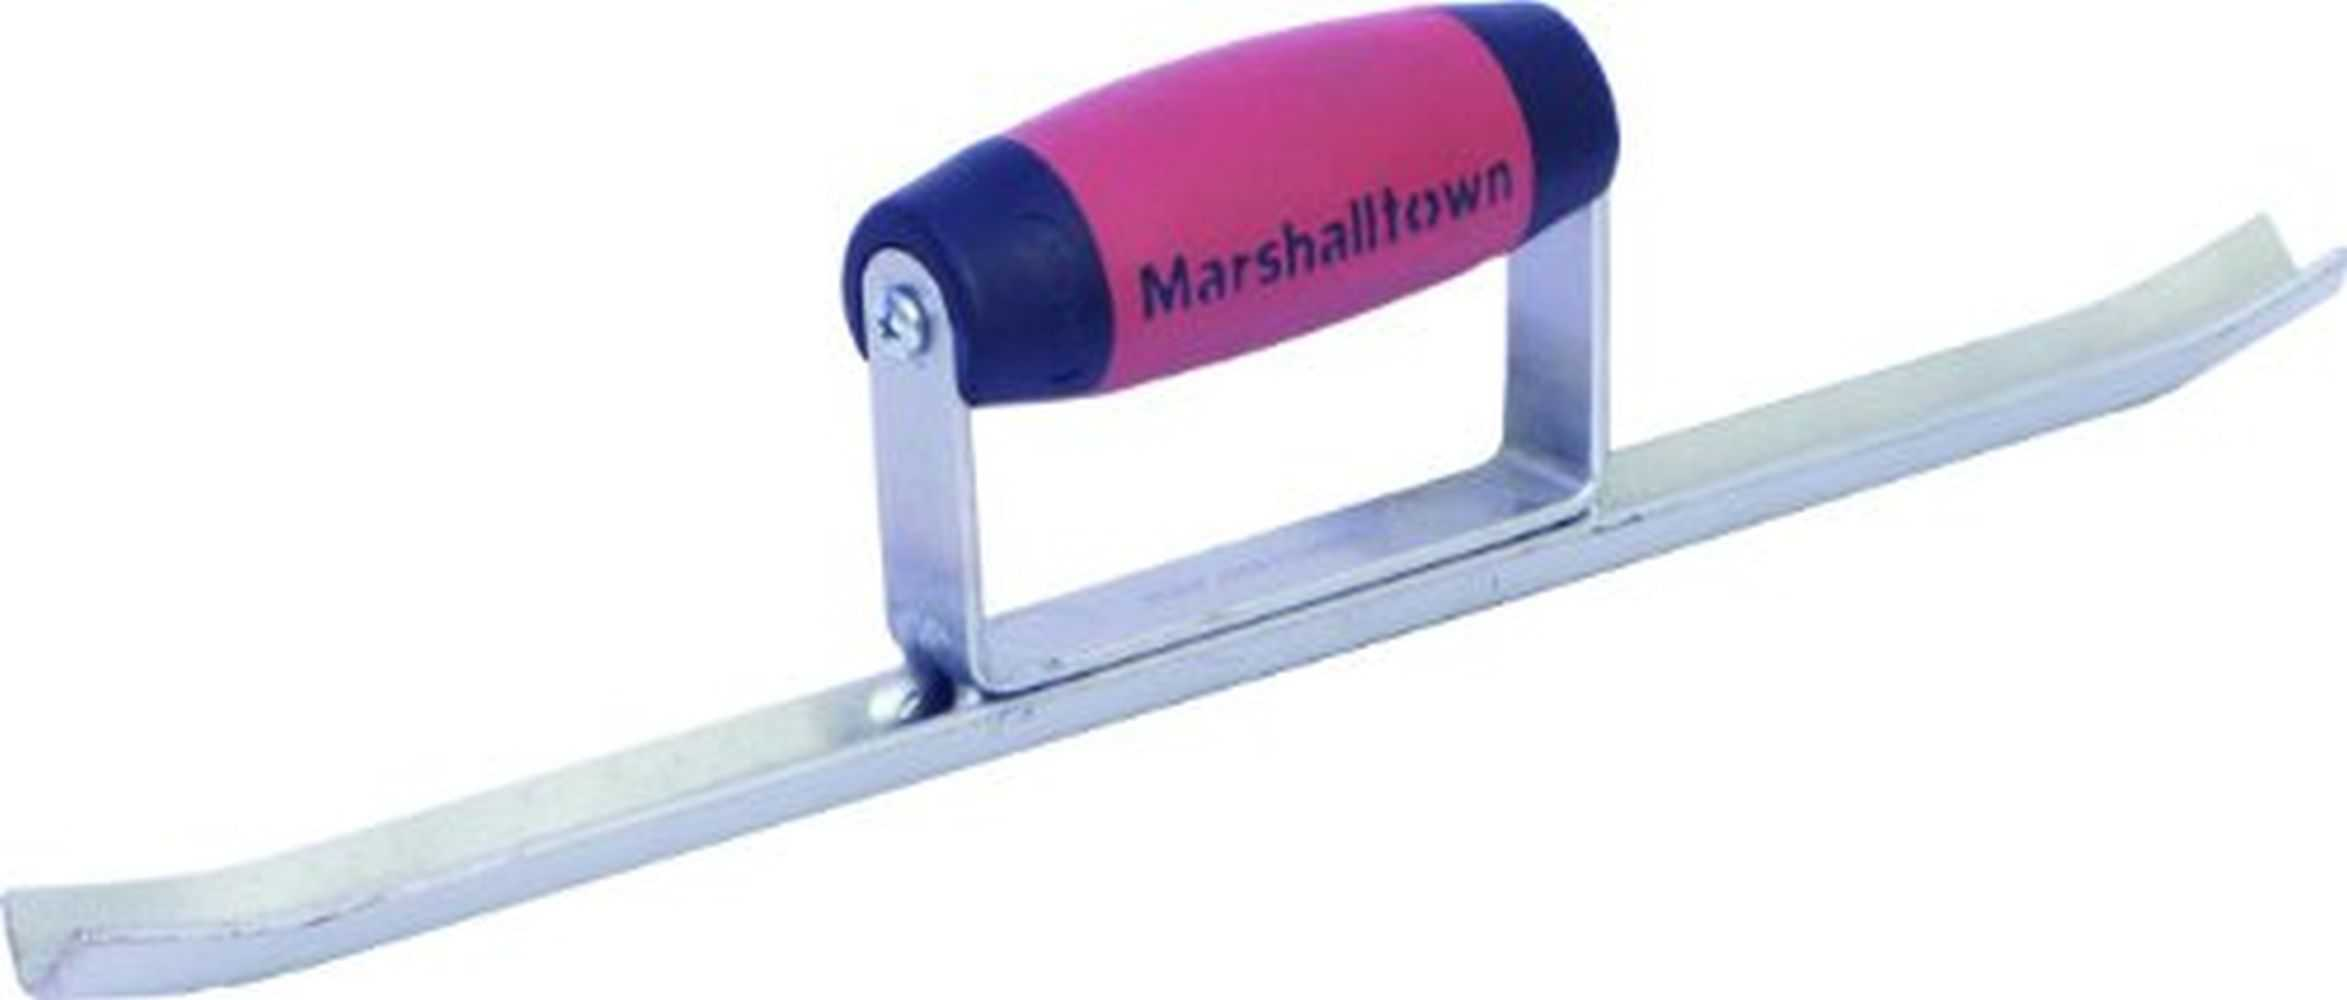 Marshalltown 610D 15'x5/8' Sled Runner Solid Half Round with DuraSoft Handle